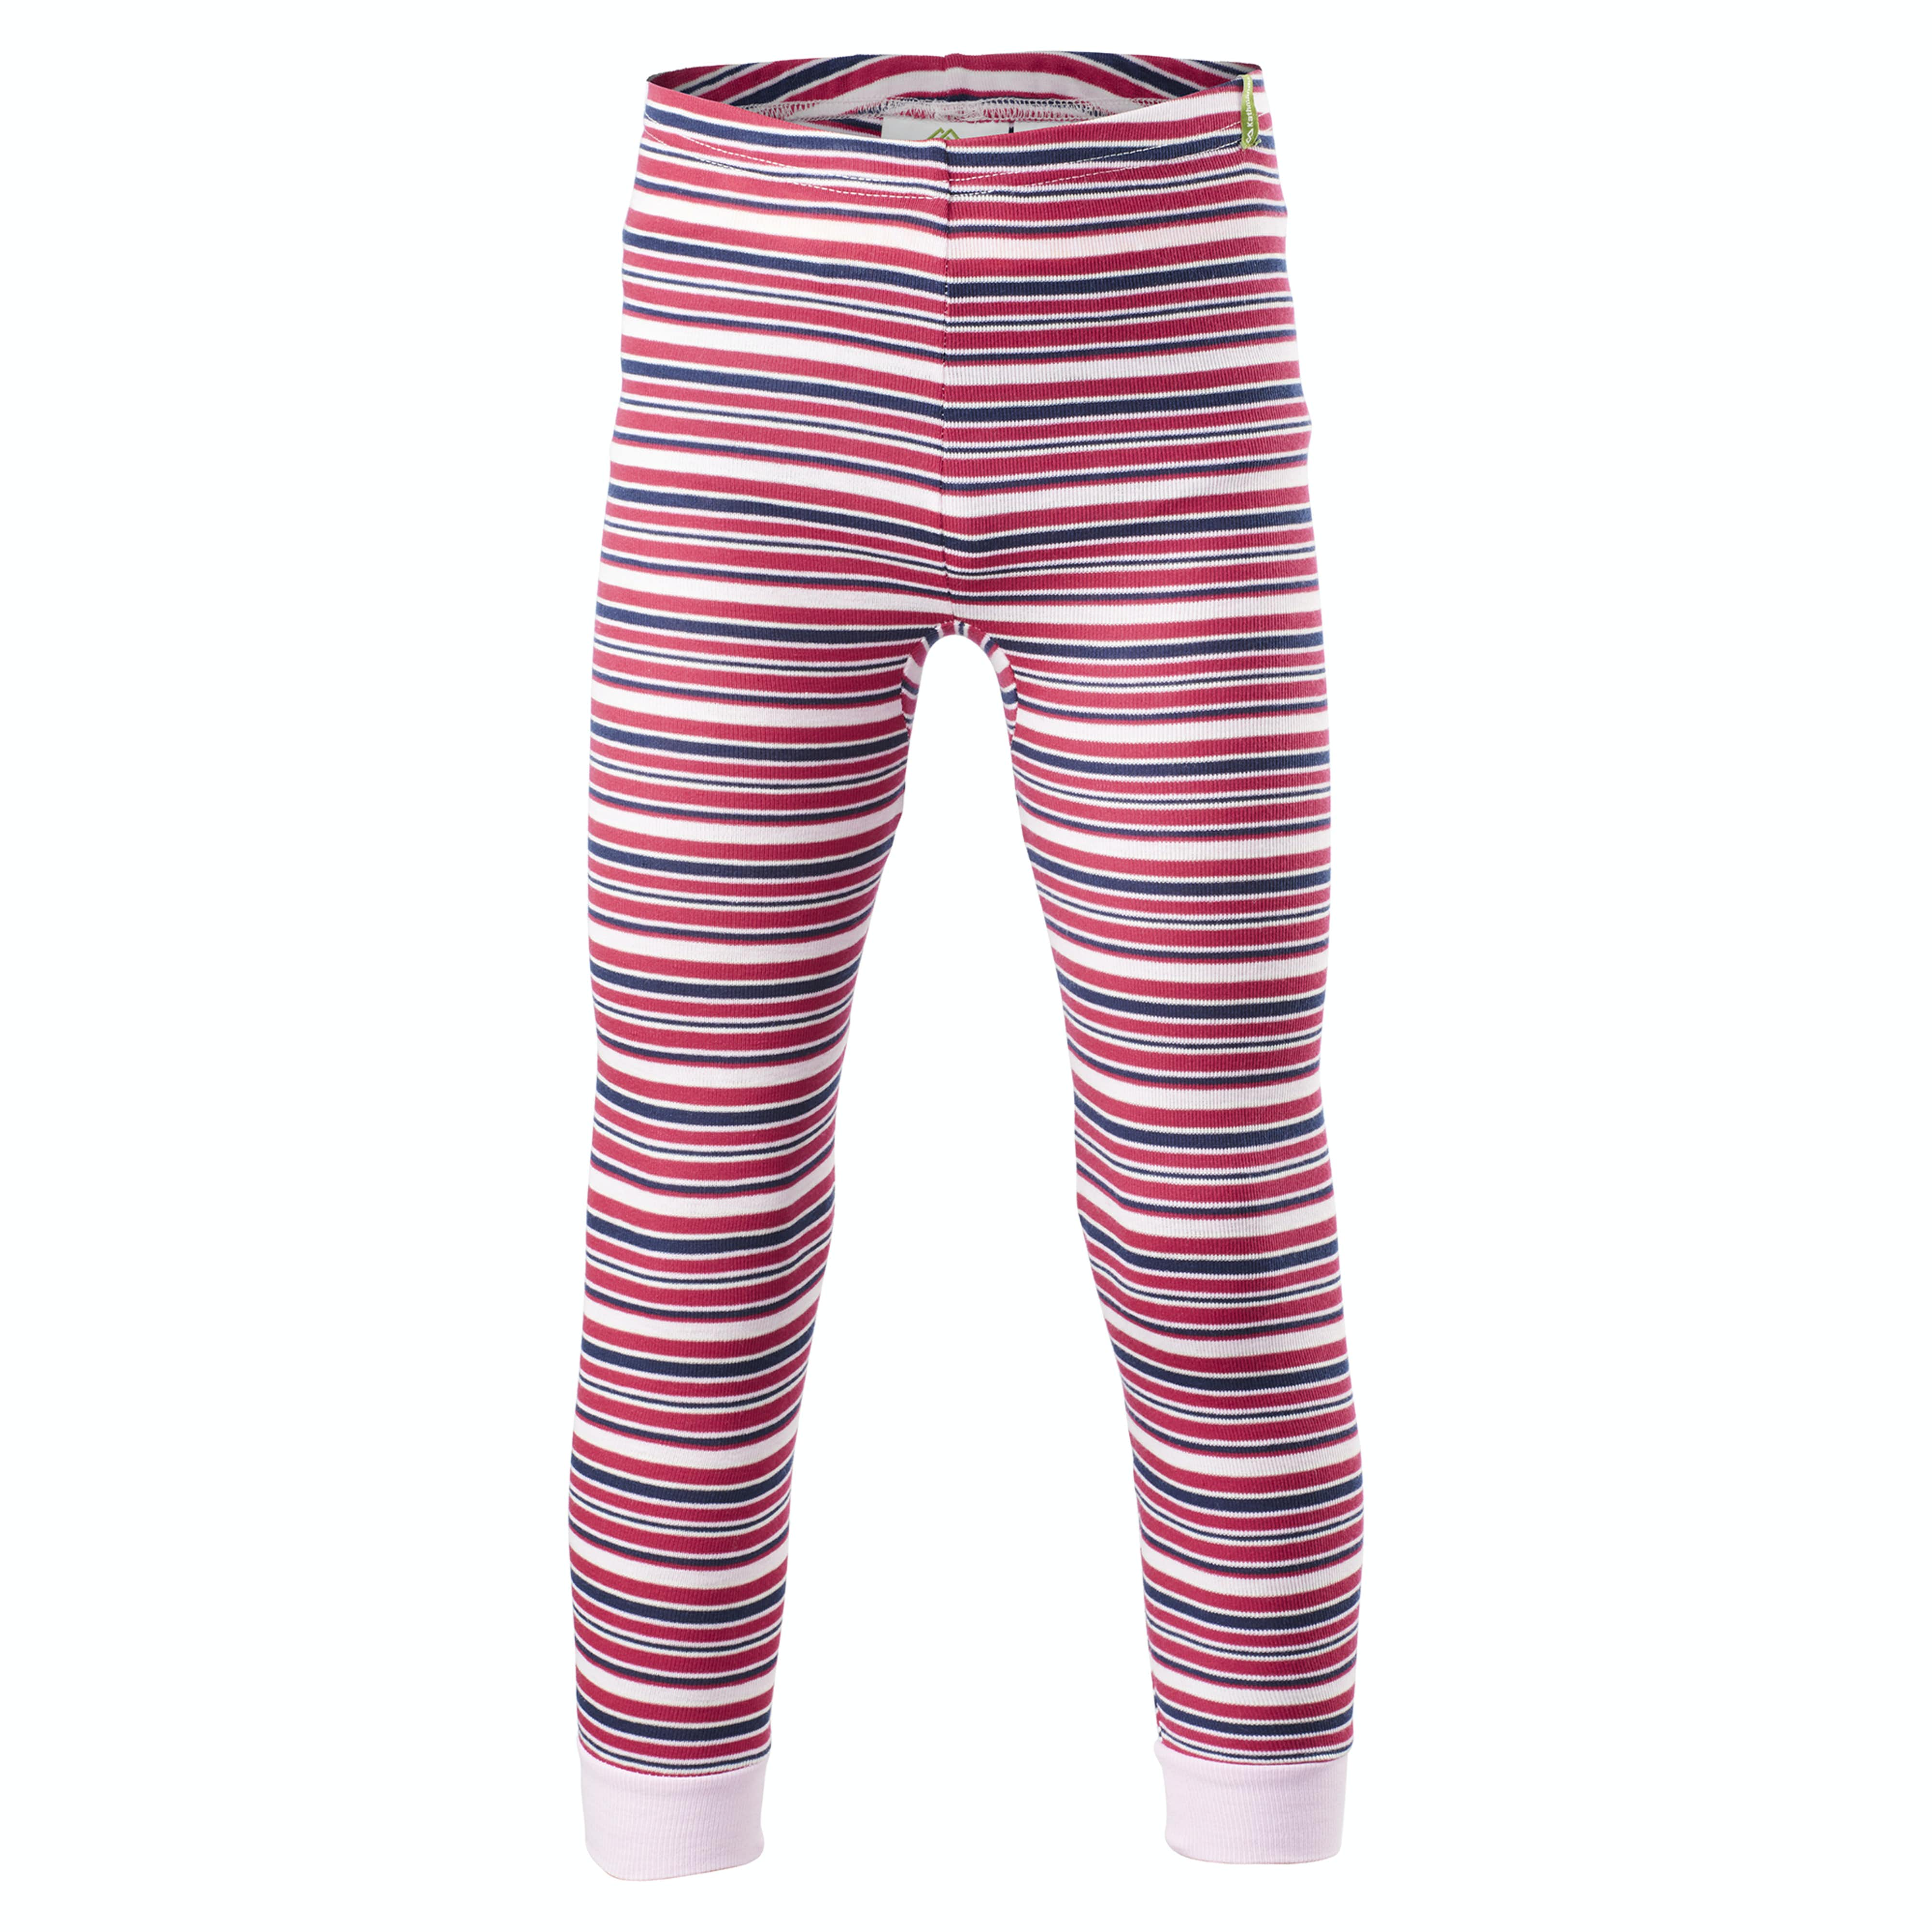 e67e988ec Kids' Thermals & Merino | Boys & Girls Thermal Underwear